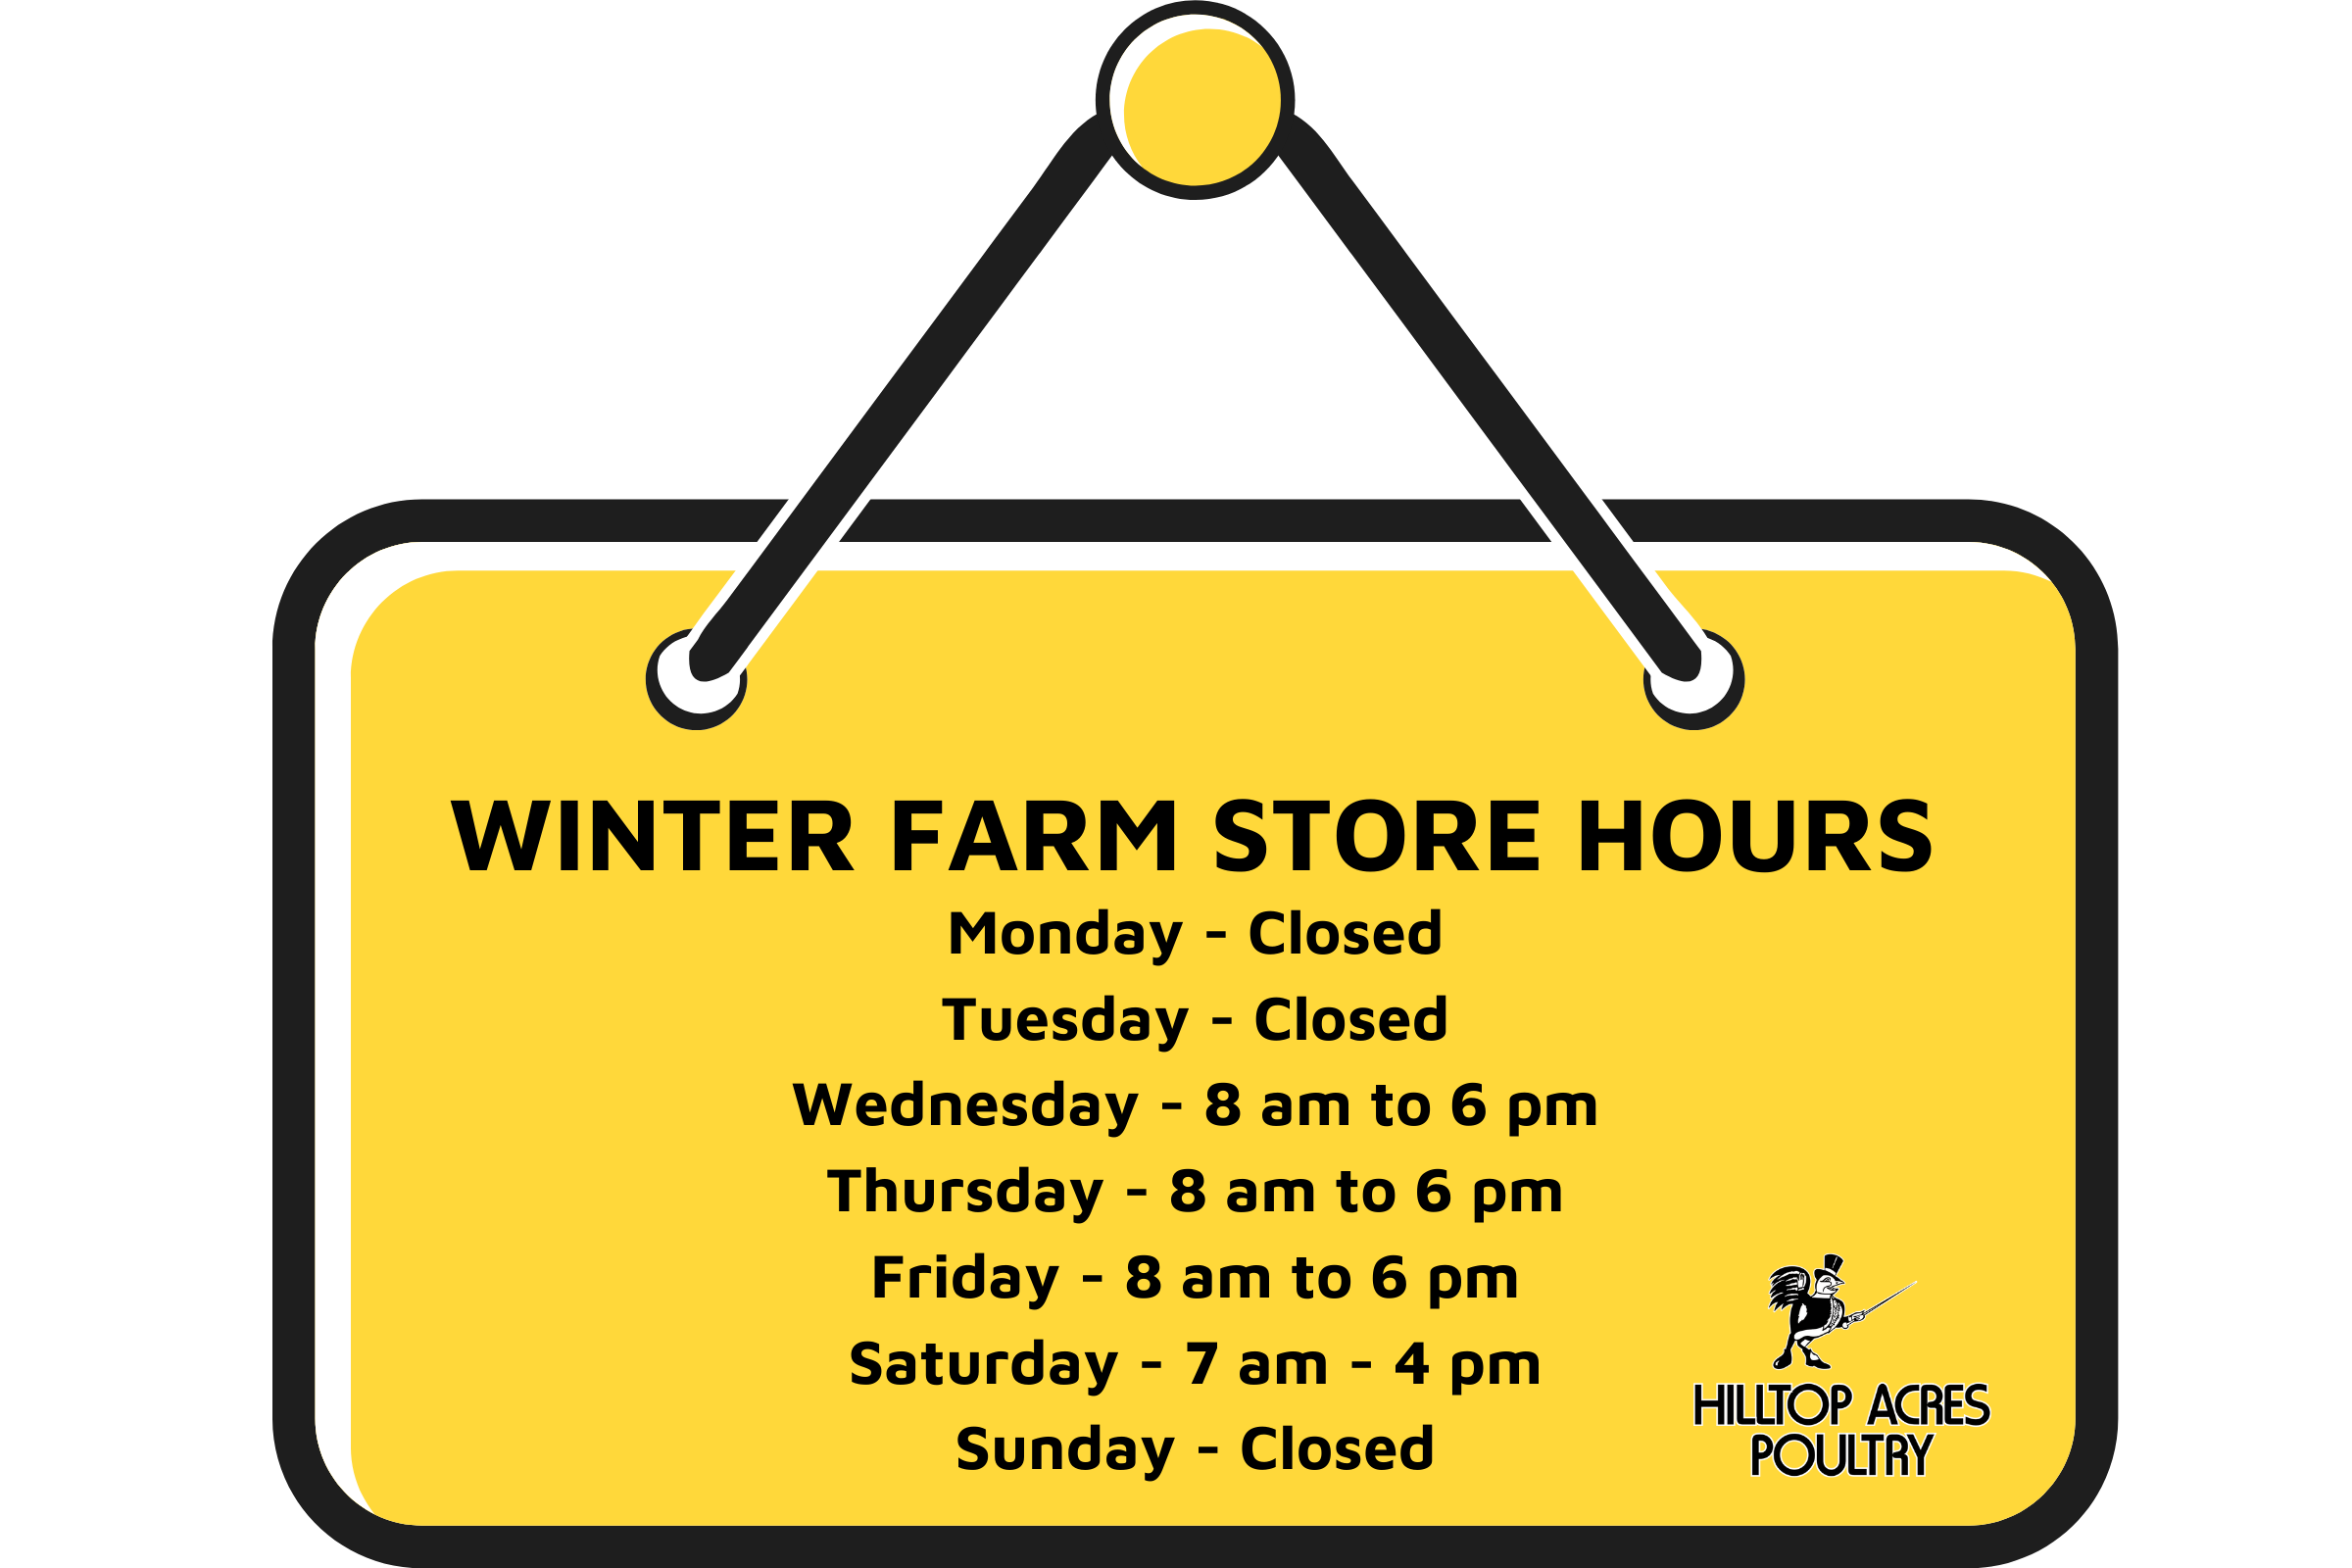 WINTER FARM STORE HOURS at Hilltop Acres Poultry